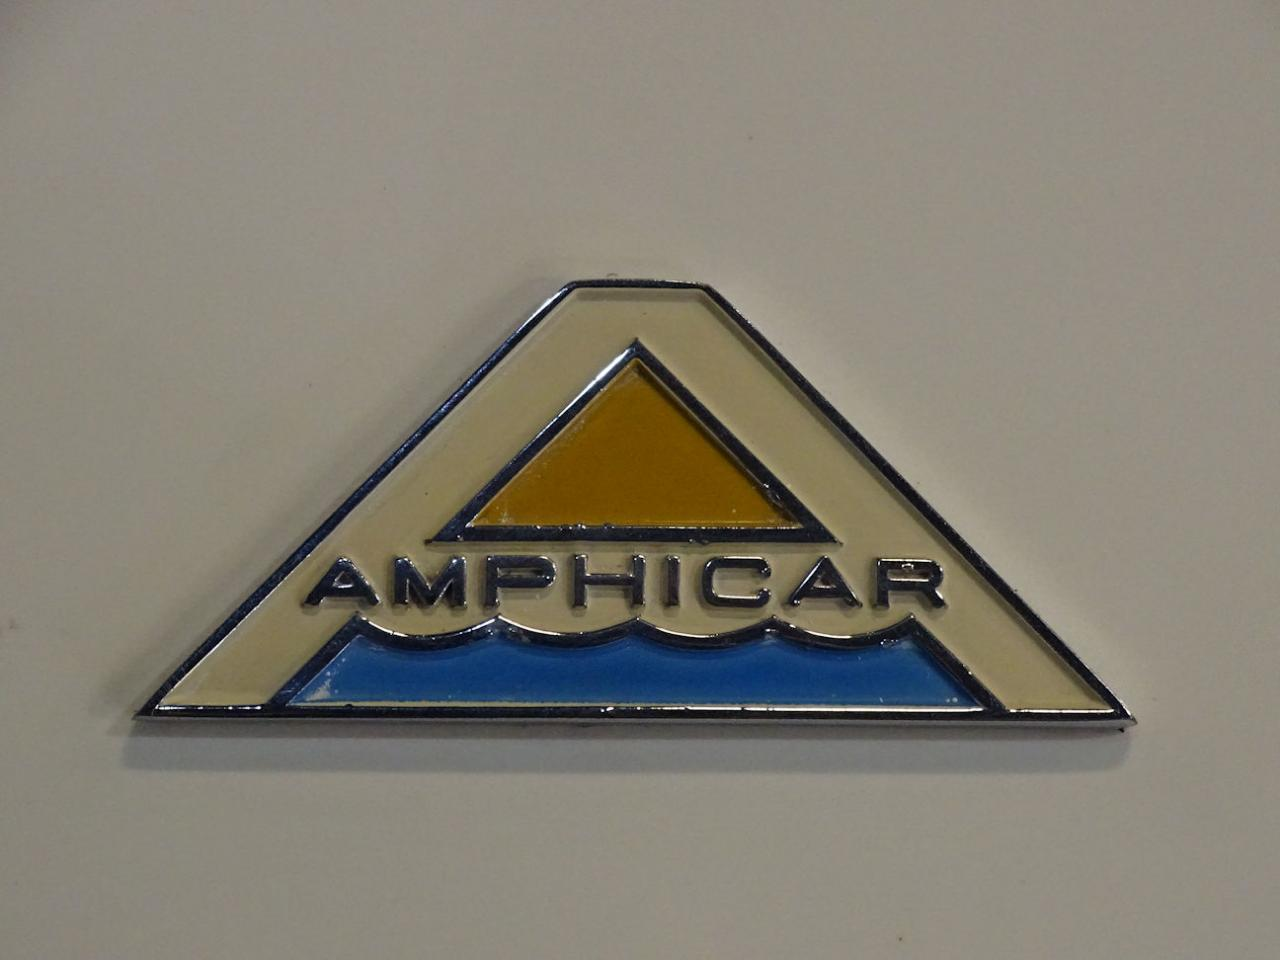 Large Picture of 1967 Amphicar 770 Offered by Gateway Classic Cars - Orlando - LI53